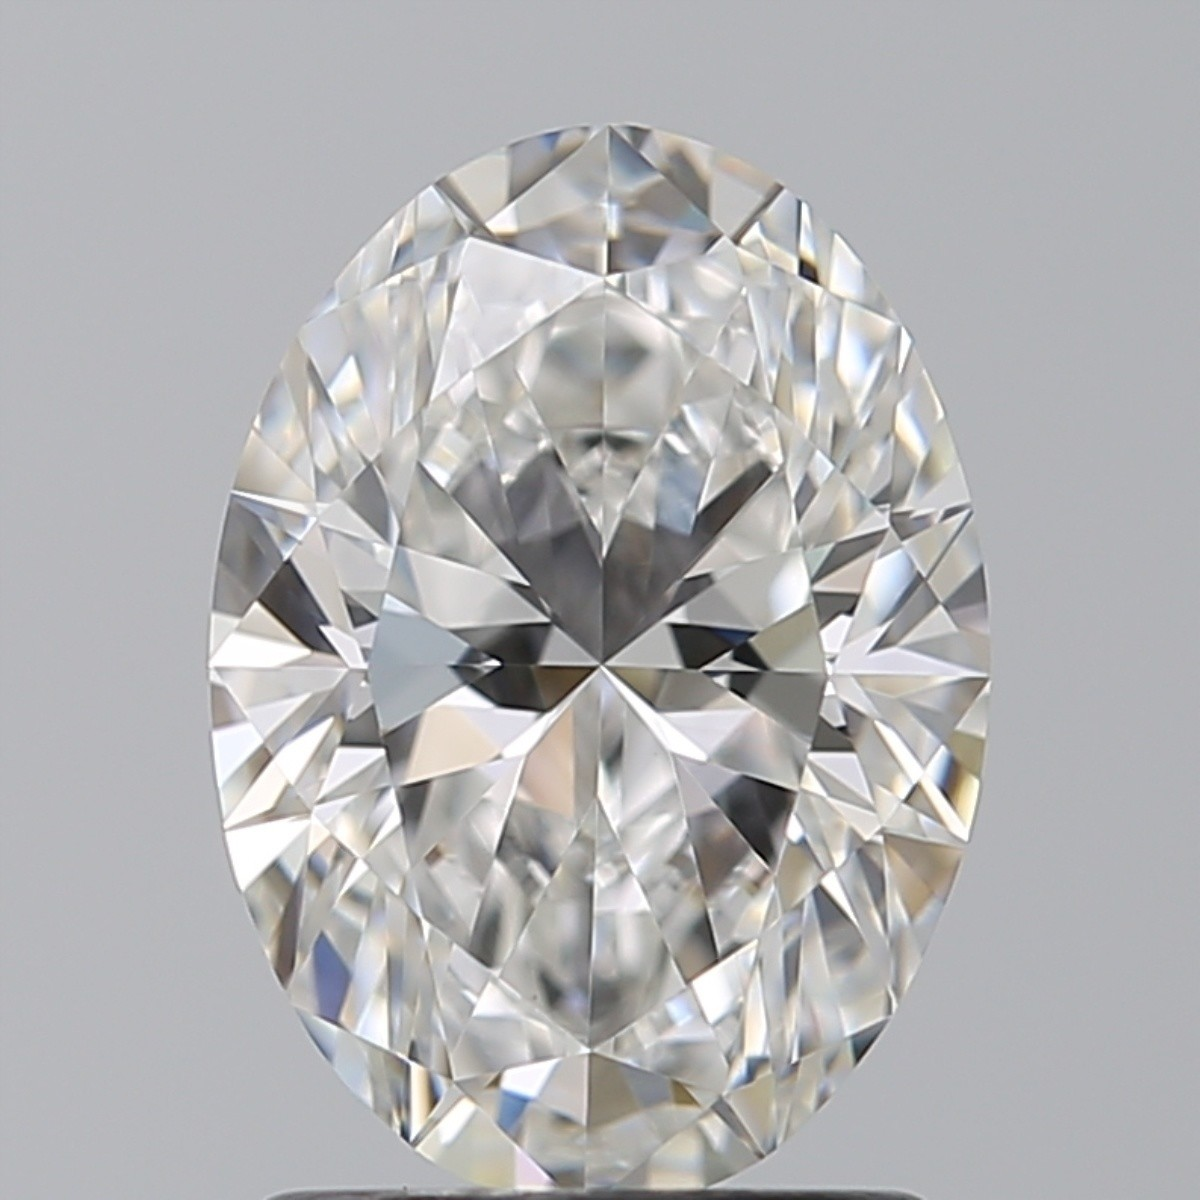 1.53 Carat Oval Diamond (F/VVS2)